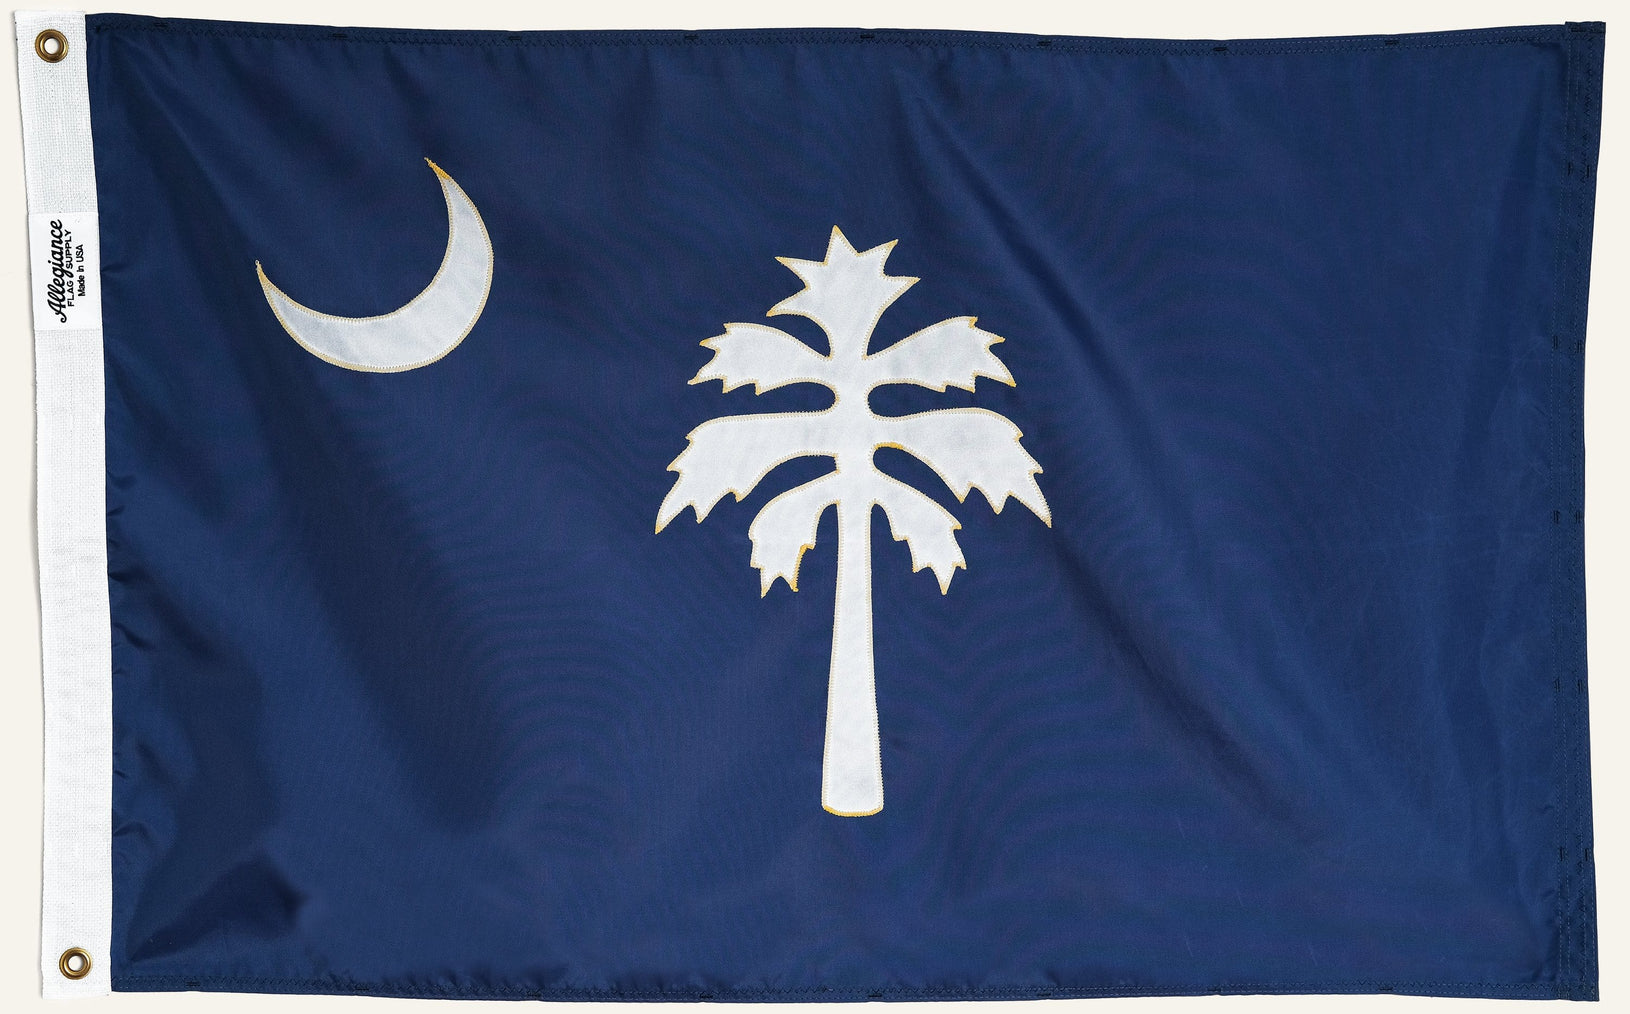 South Carolina State Flag, Allegiance Flag Supply, Heirloom Quality Flags